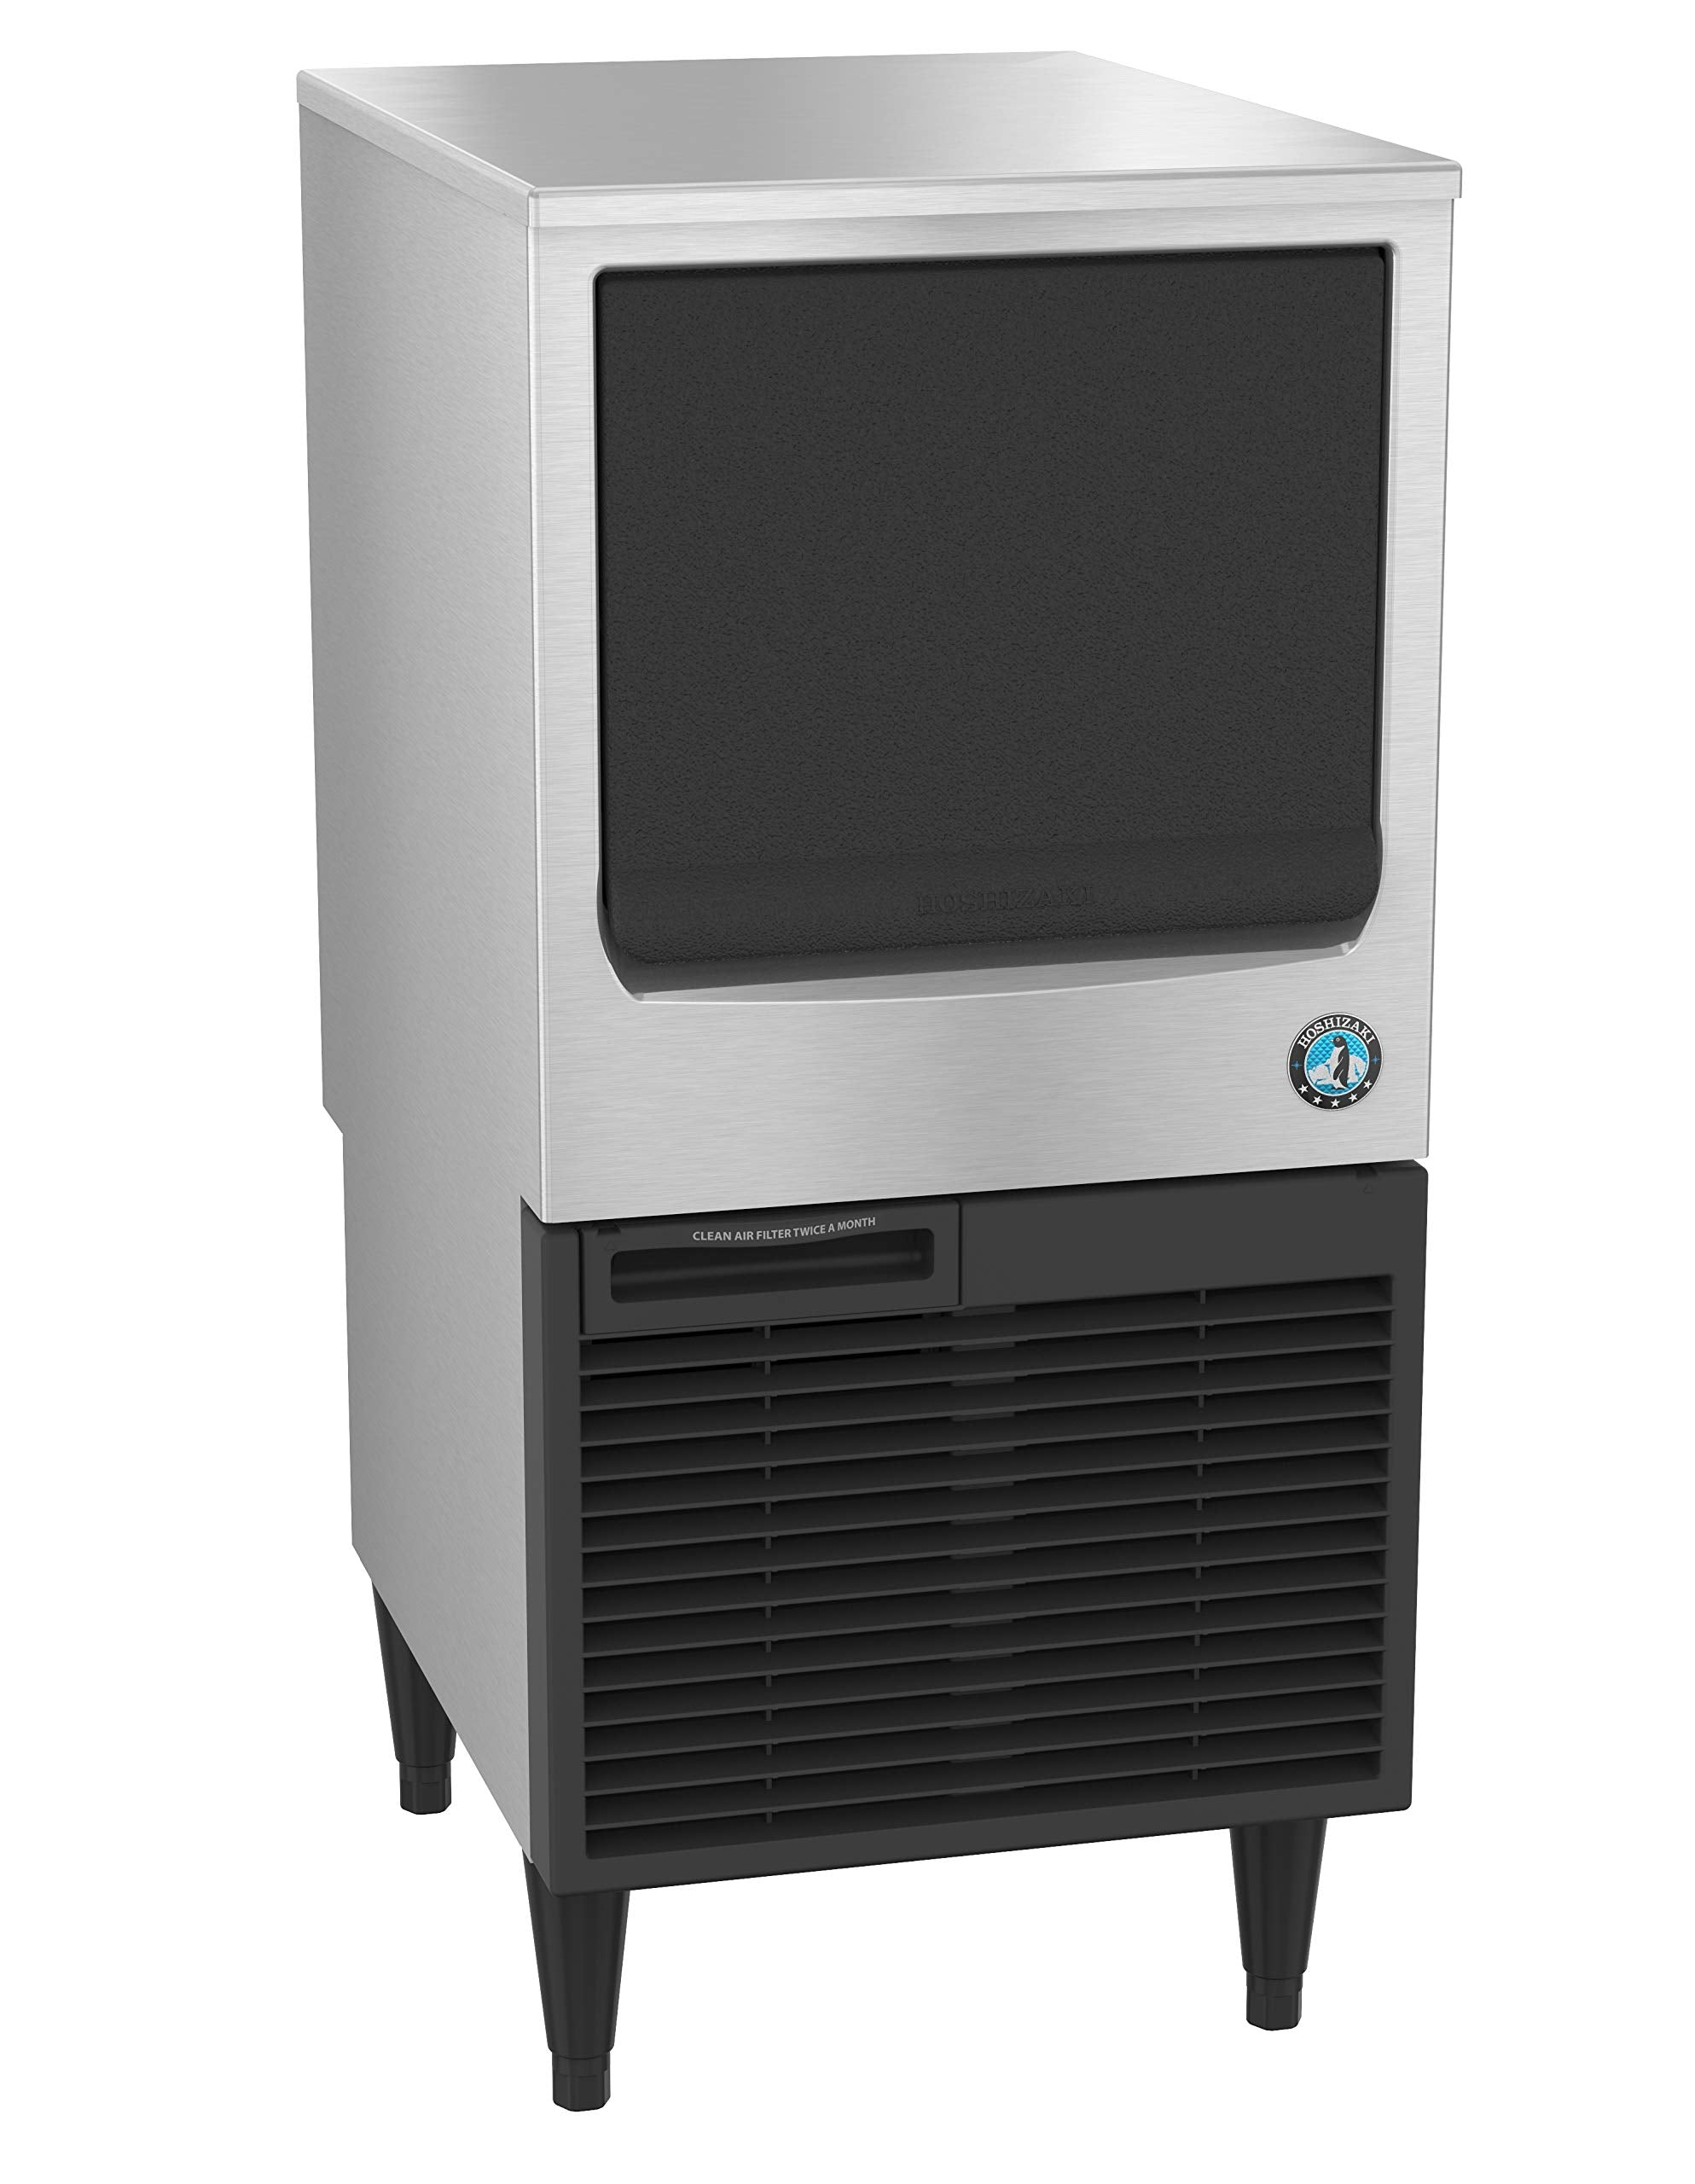 HOSHIZAKI KM-80BAJ Ice Maker Air-cooled Self Contained Built in Storage Bin